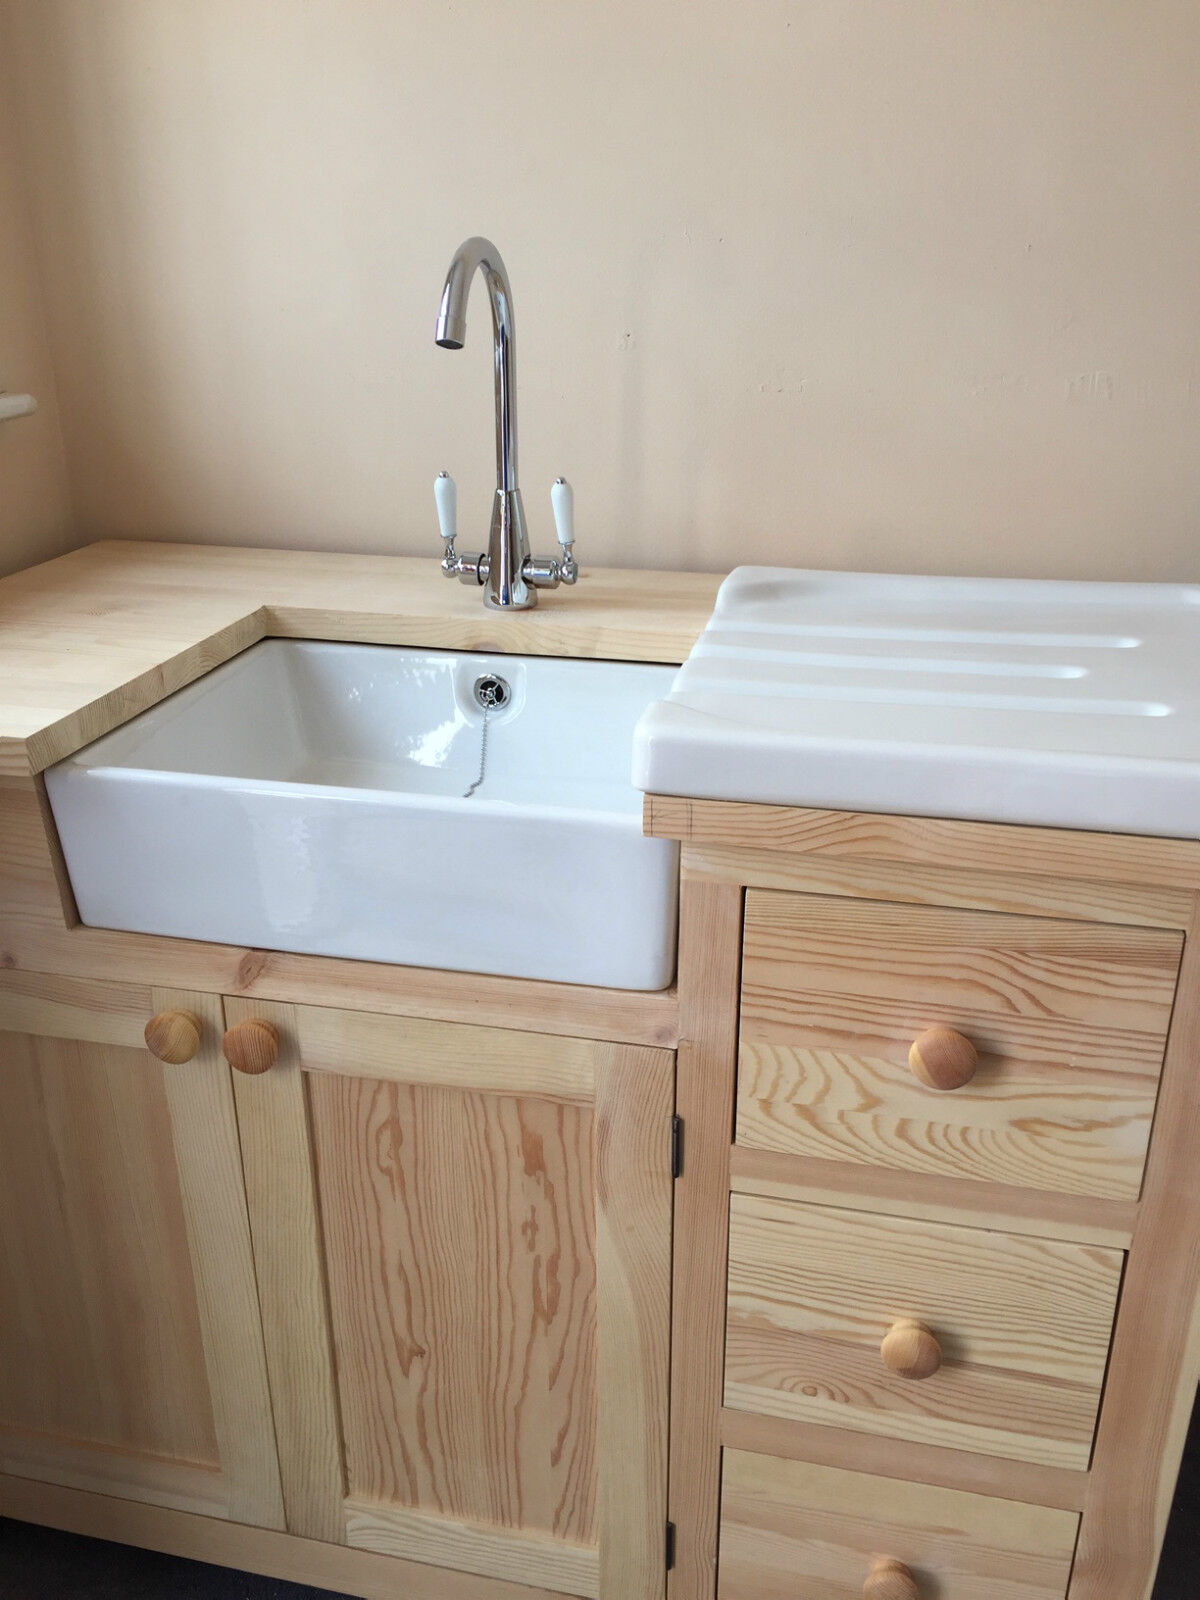 Baby Belfast White Ceramic Sink With Chrome Waste And